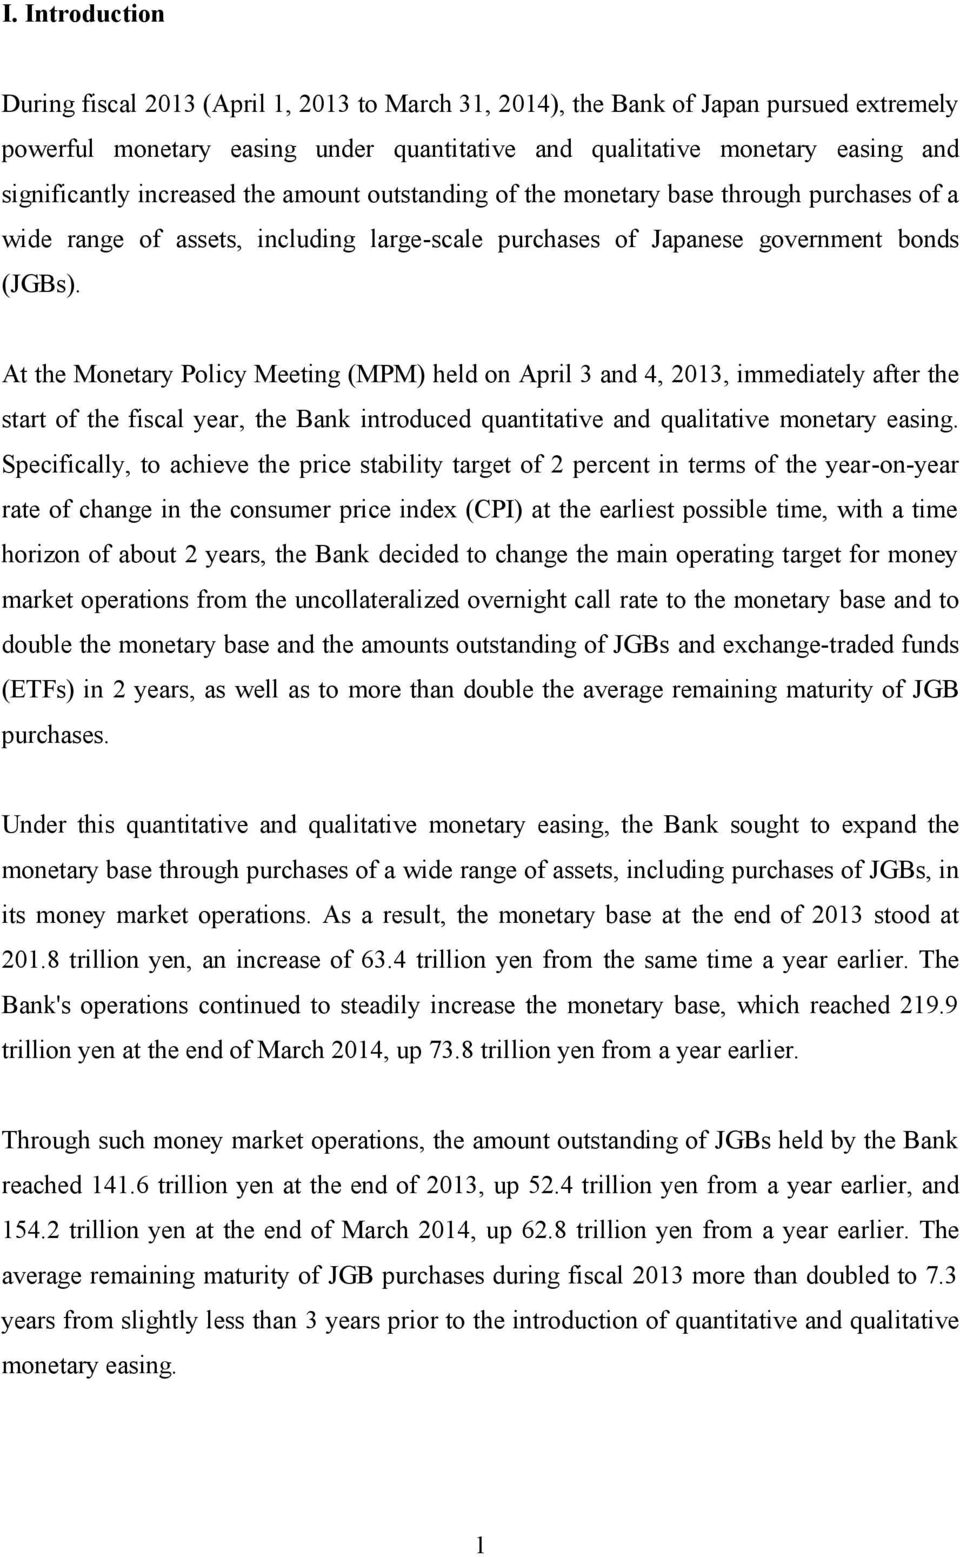 At the Monetary Policy Meeting (MPM) held on April 3 and 4, 2013, immediately after the start of the fiscal year, the Bank introduced quantitative and qualitative monetary easing.